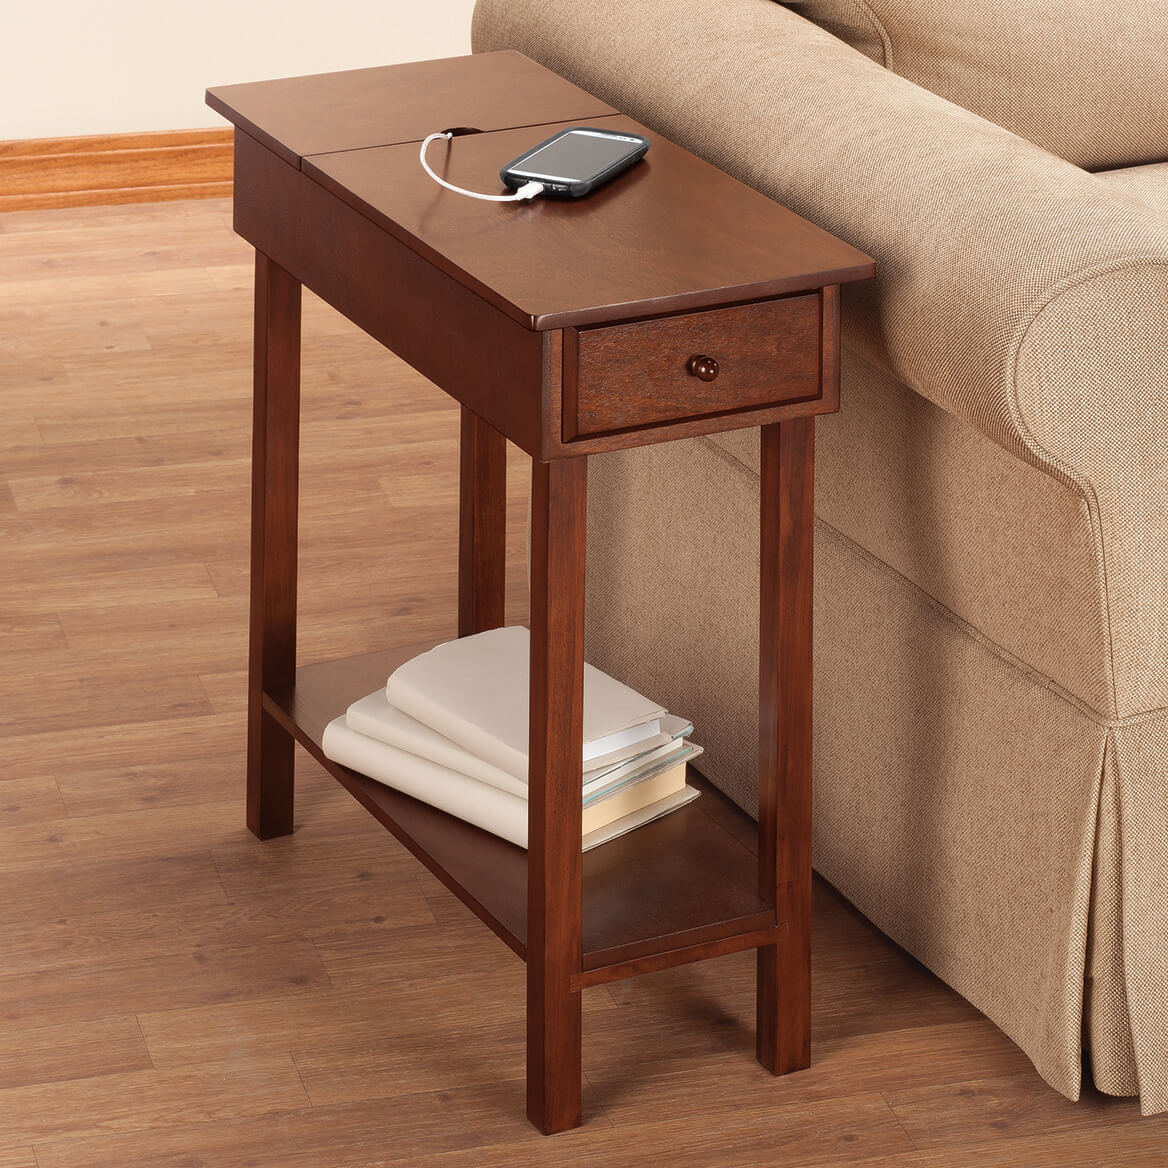 chairside table with usb power strip by oakridge